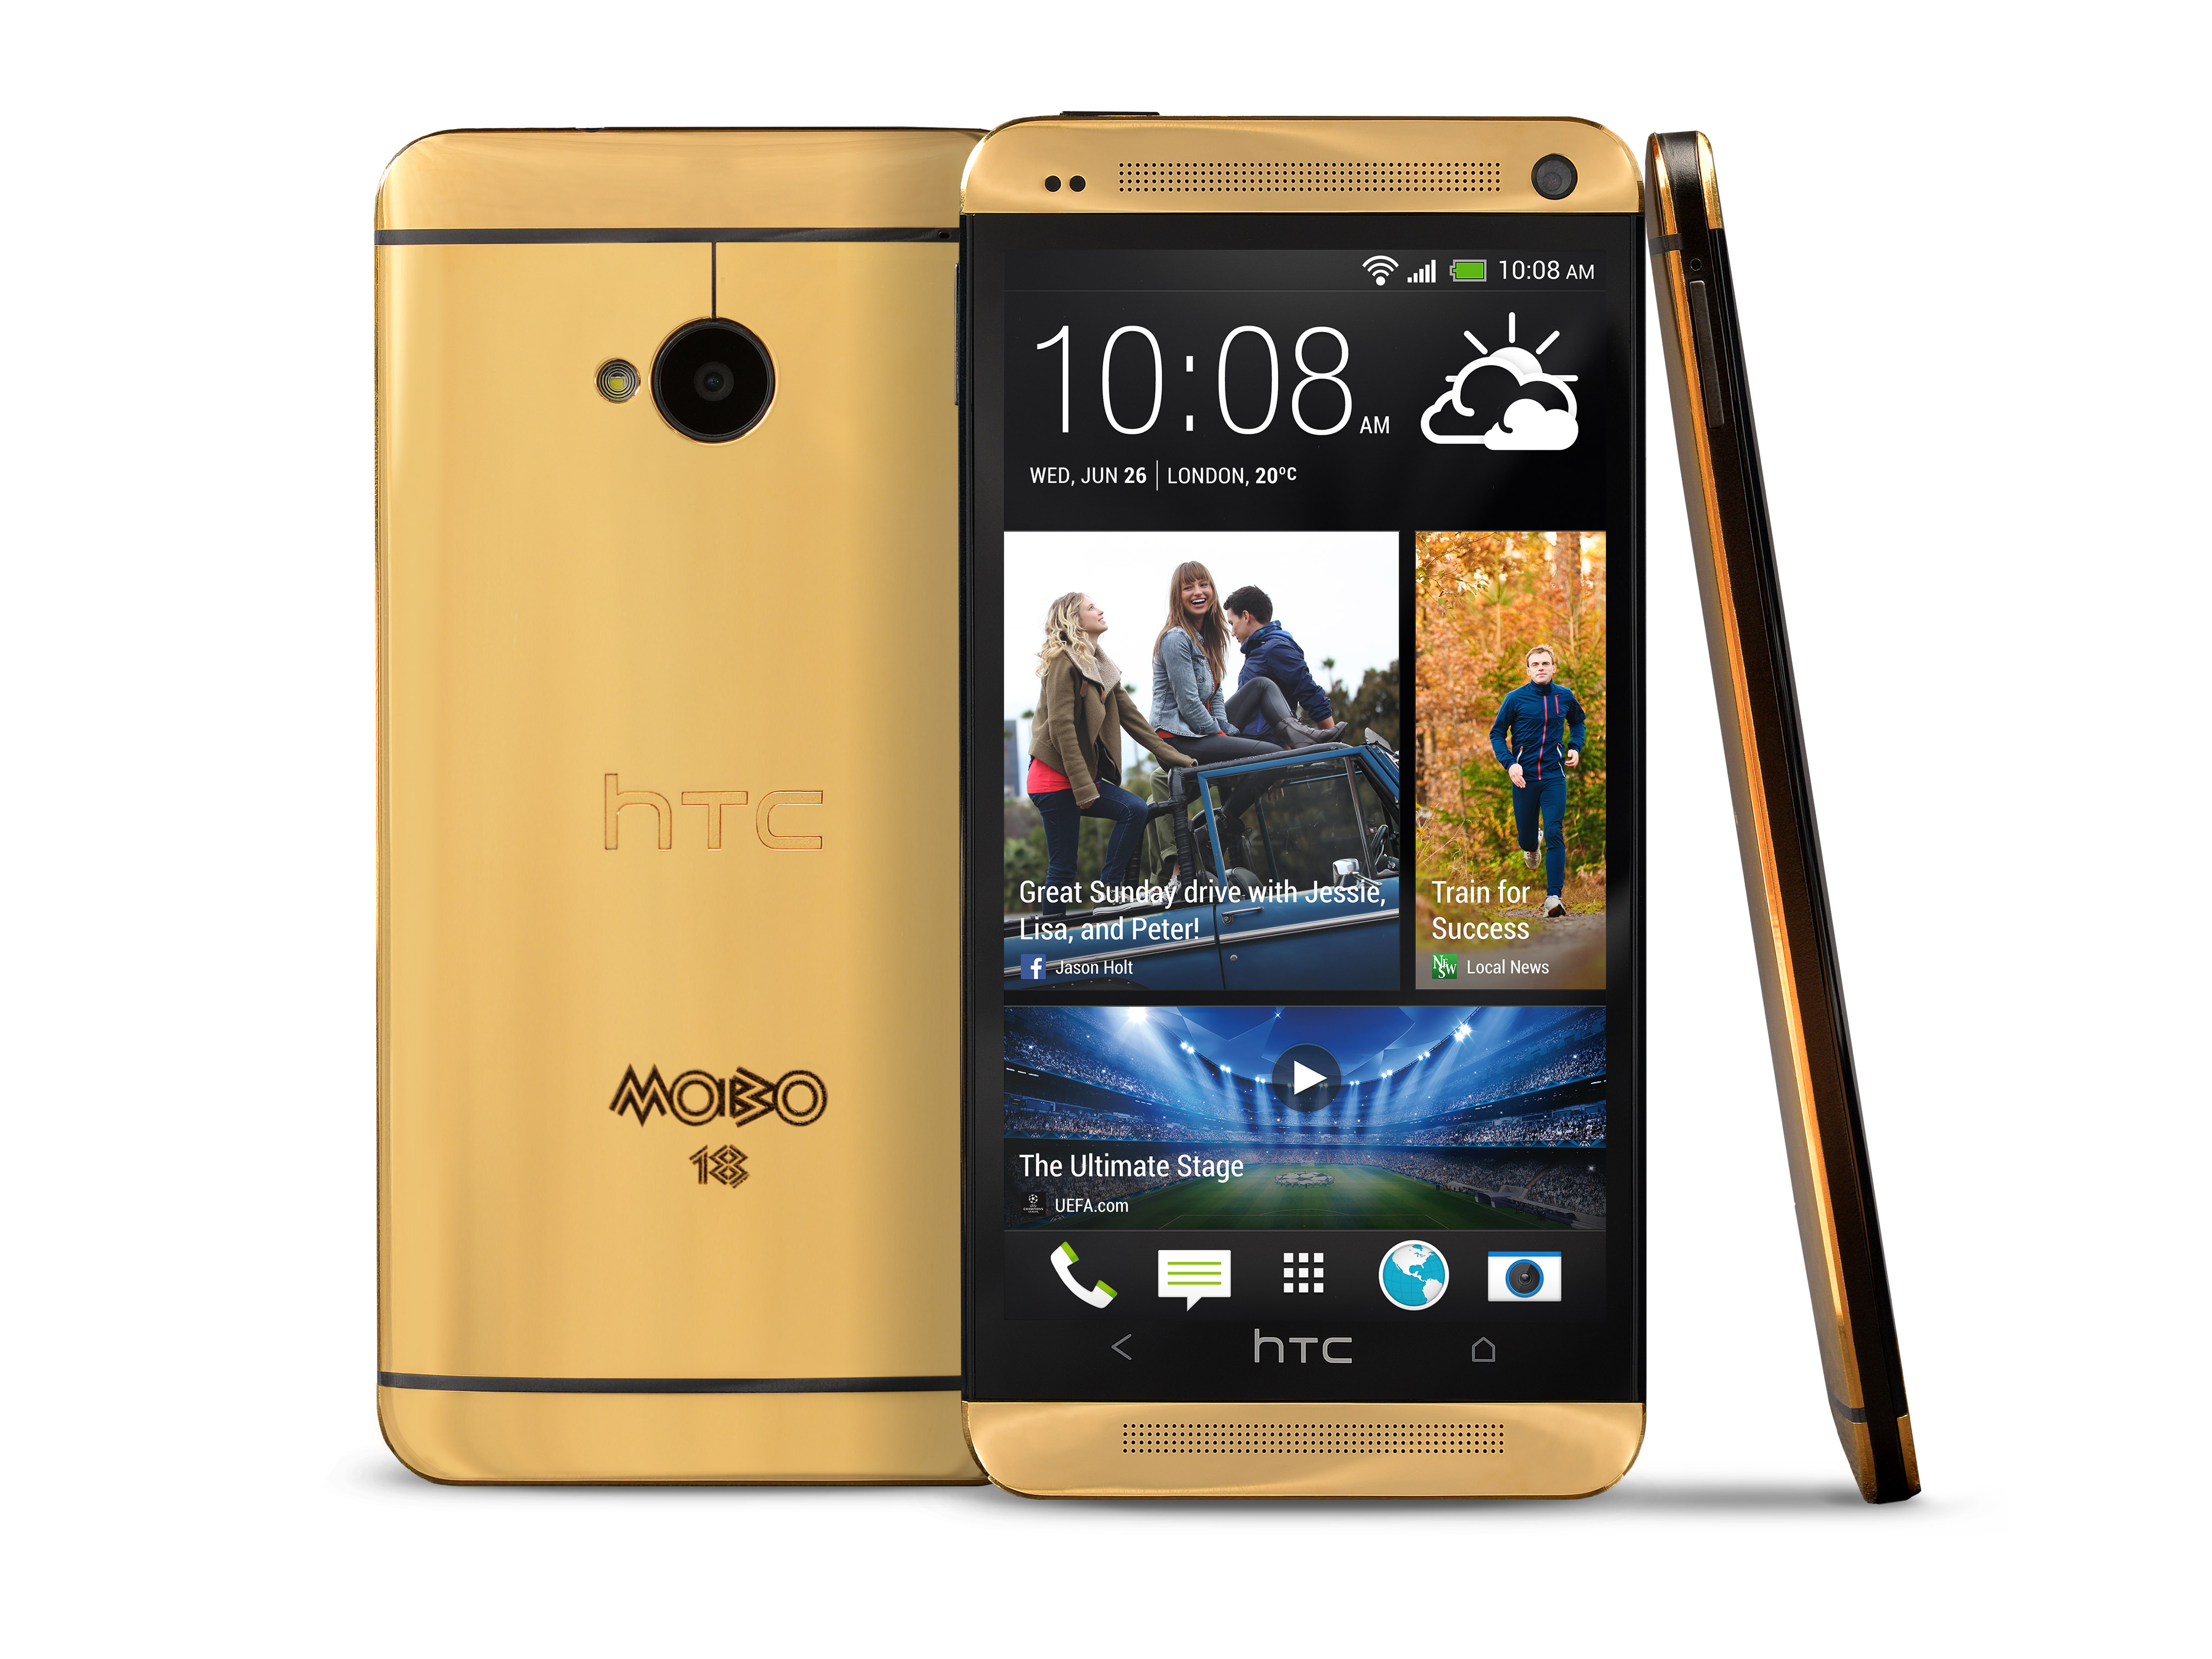 Forget the gold iPhone, here's the 18ct gold HTC One valued at $4,400 - but you can't buy one